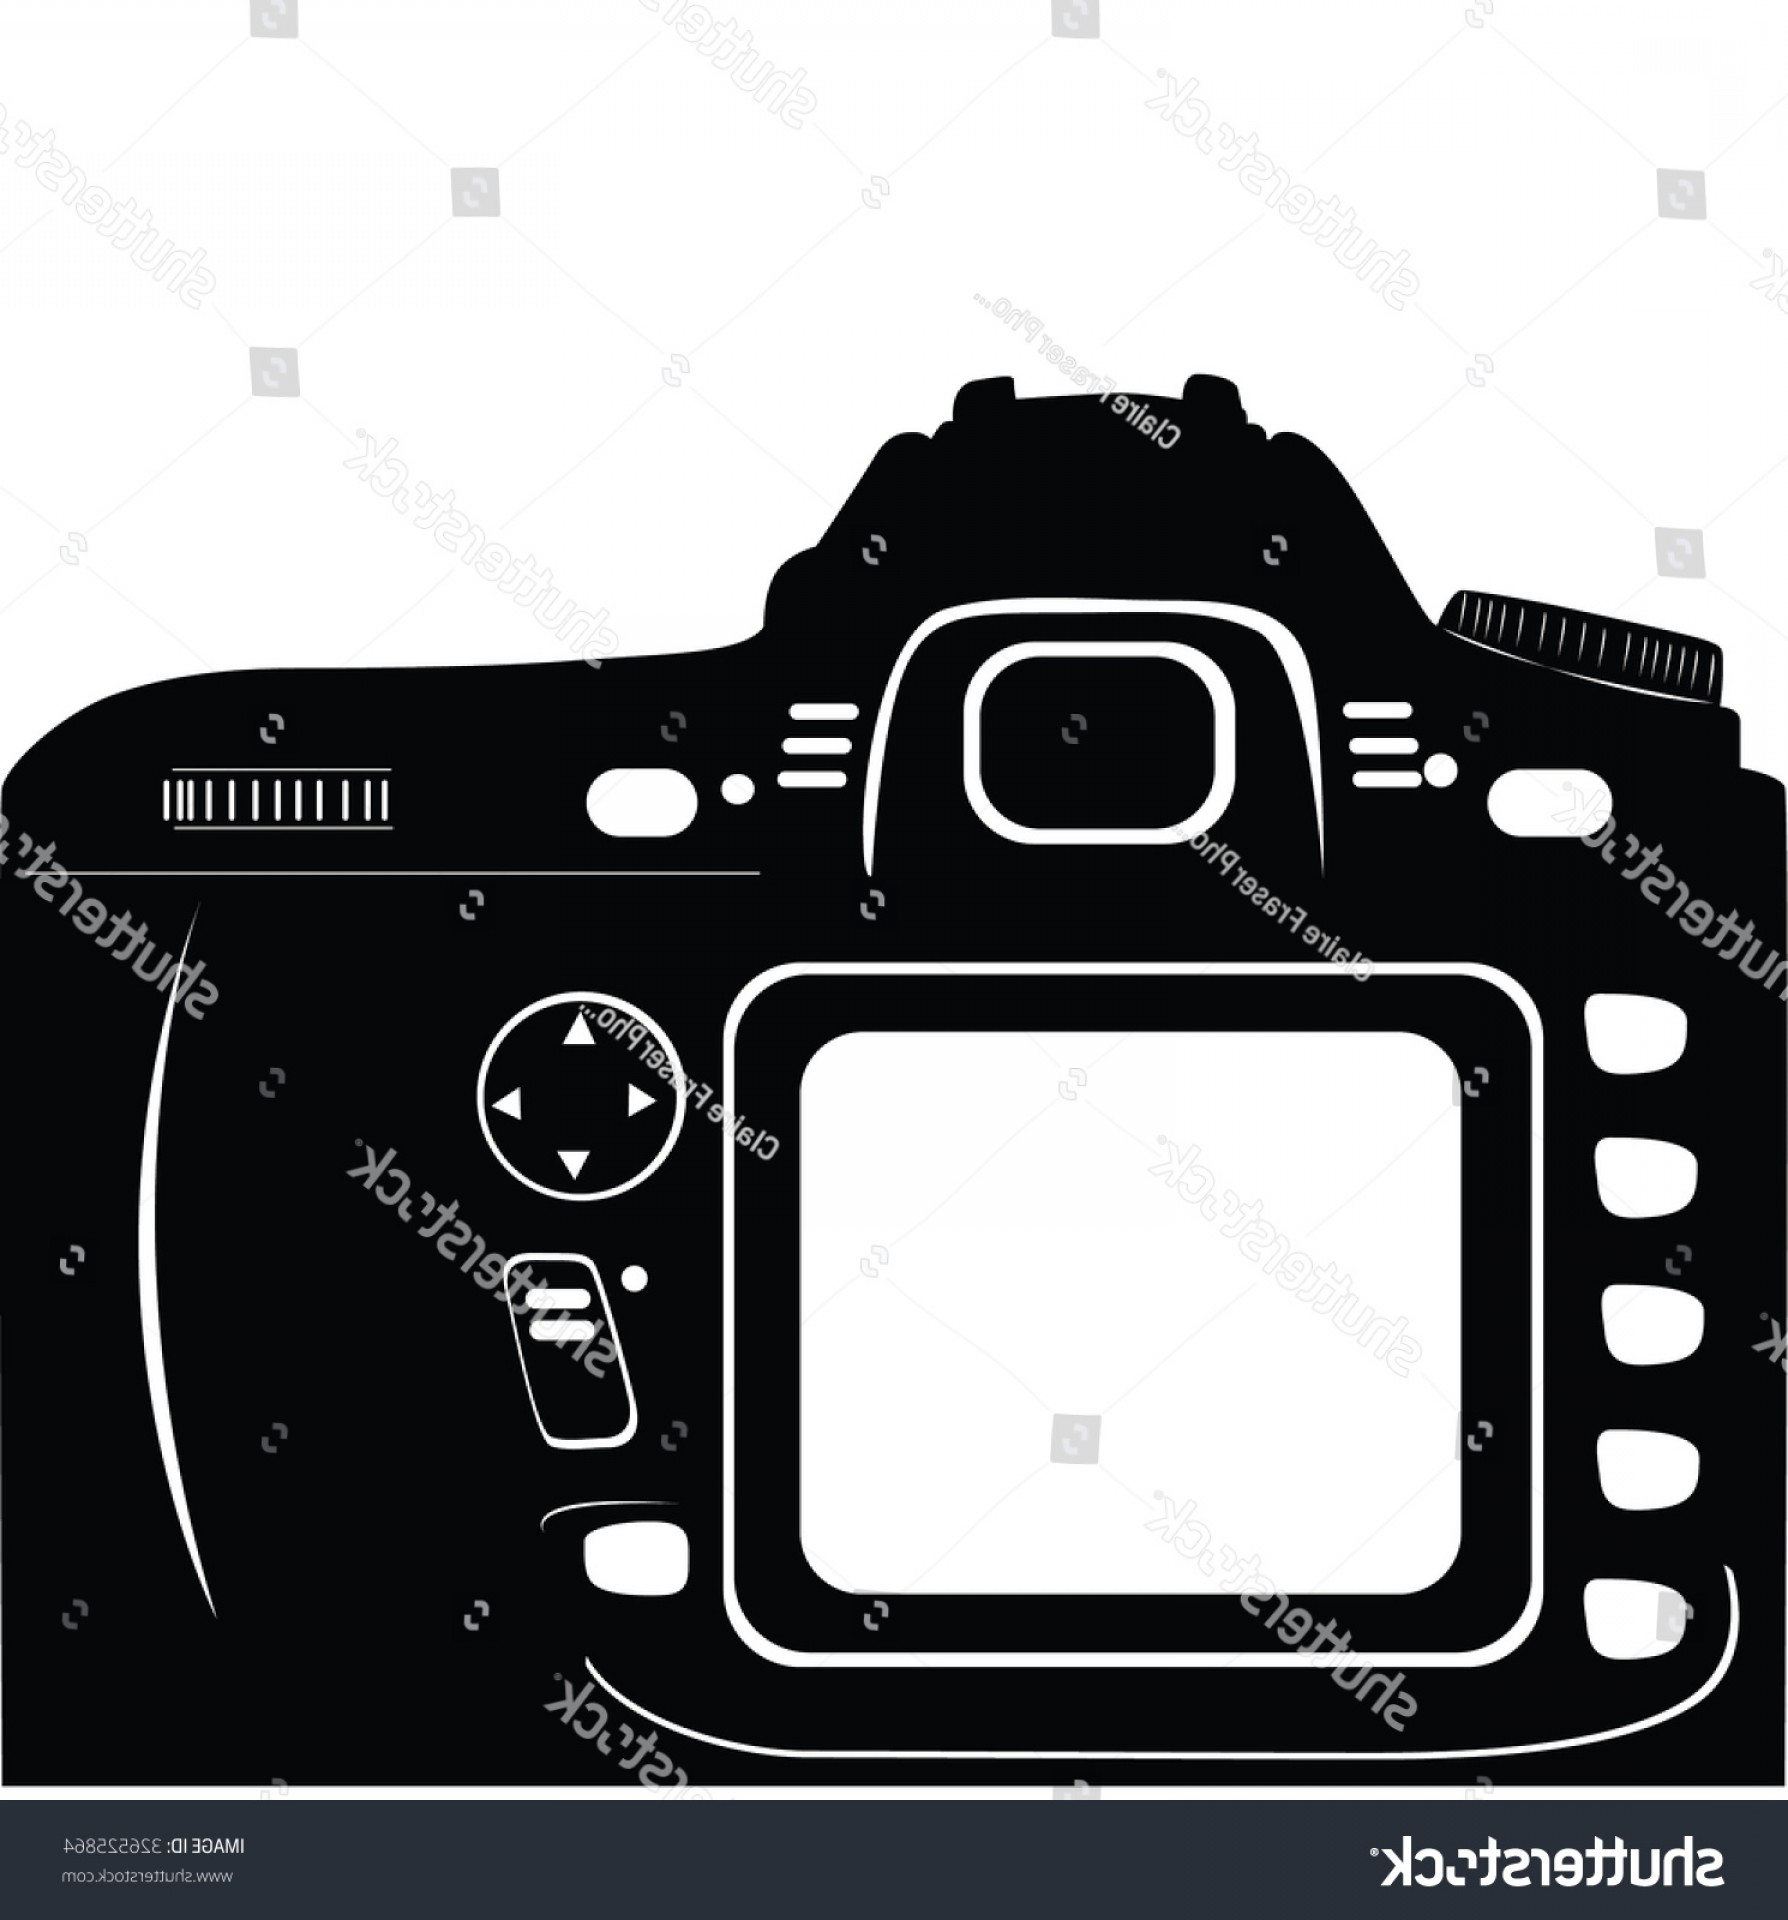 SLR Camera Vector: Digital Slr Camera Back Display Black